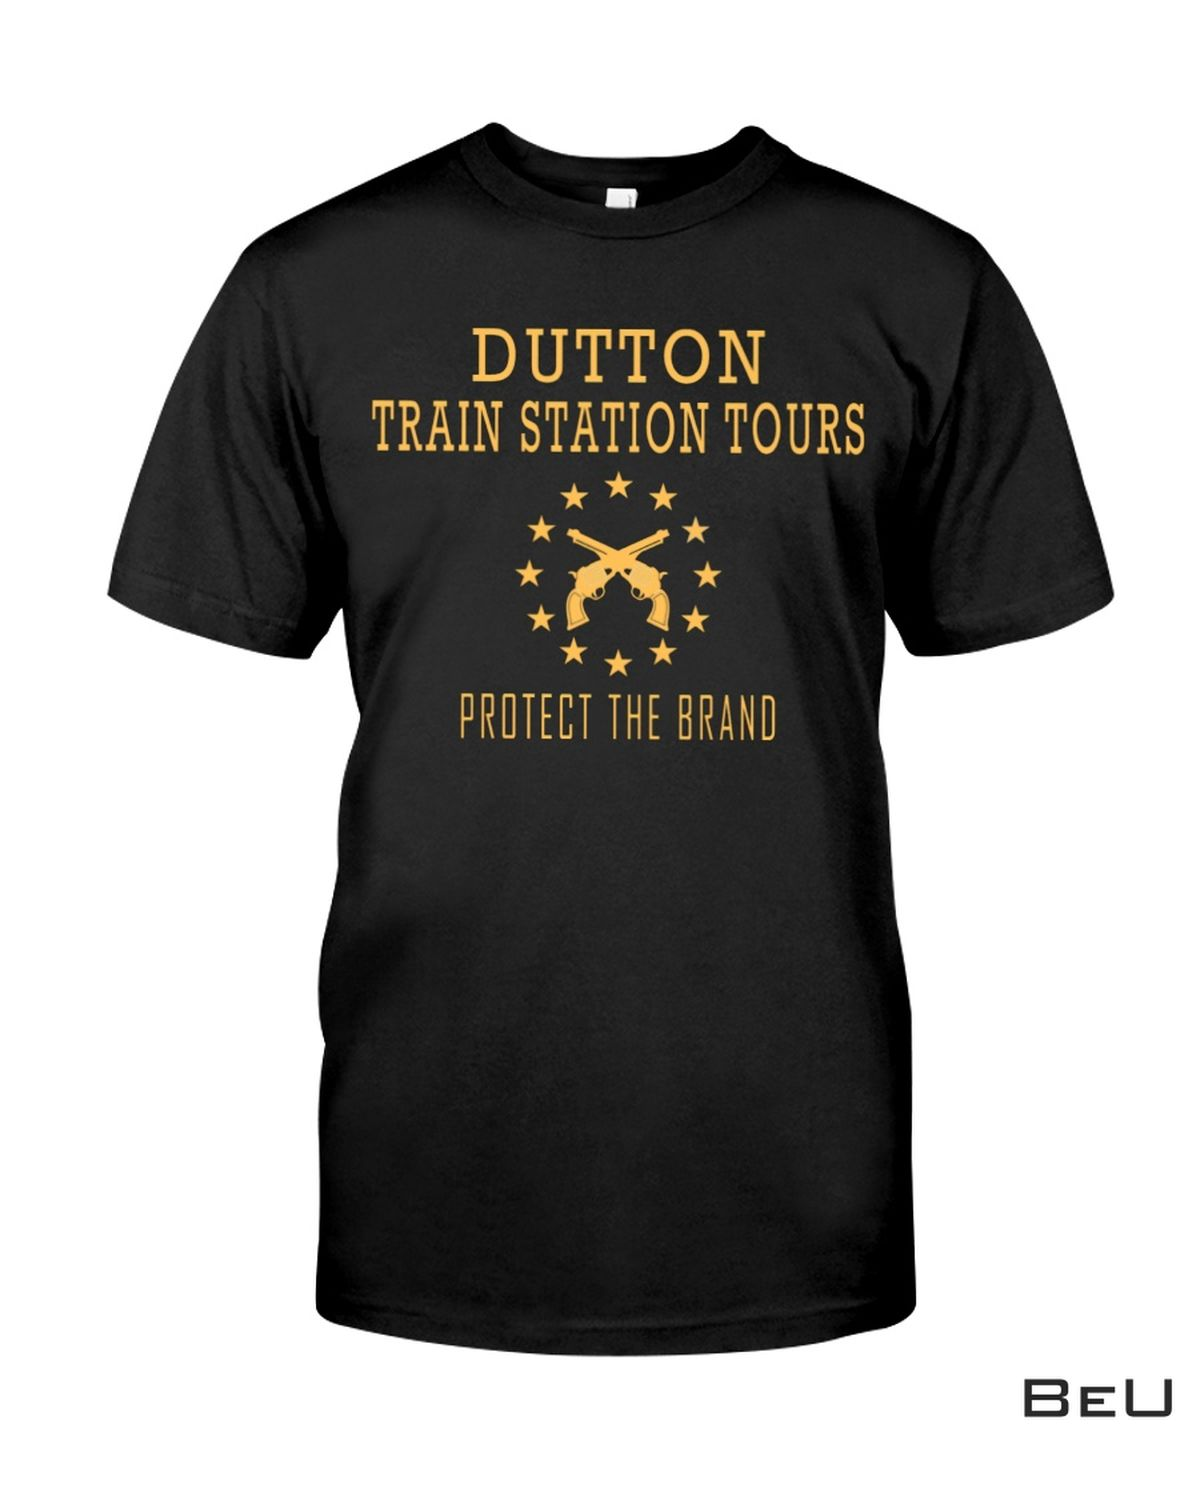 Dutton Train Station Tours Protect The Brand Shirt, Hoodie, Tank Top